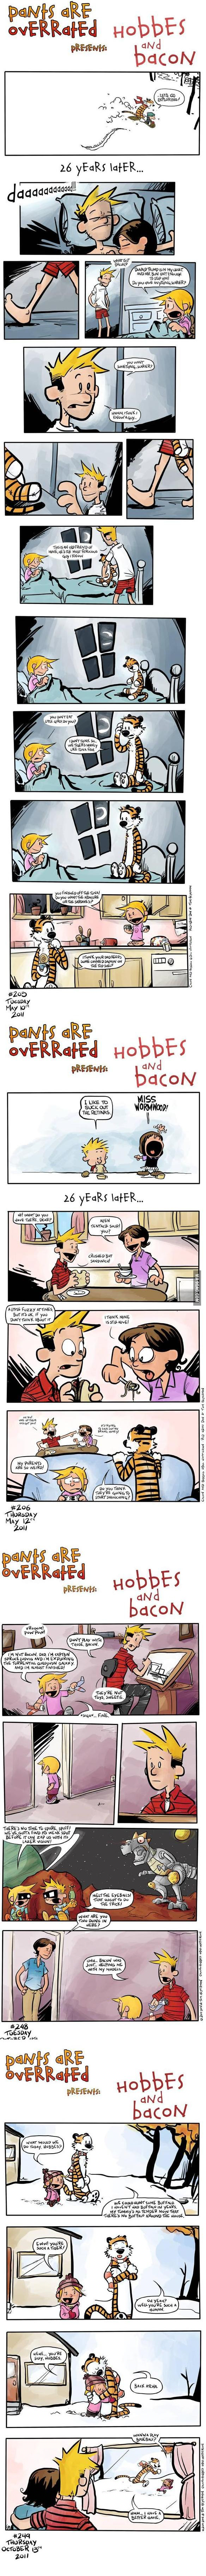 A Comic Strip Of Calvin all grown up